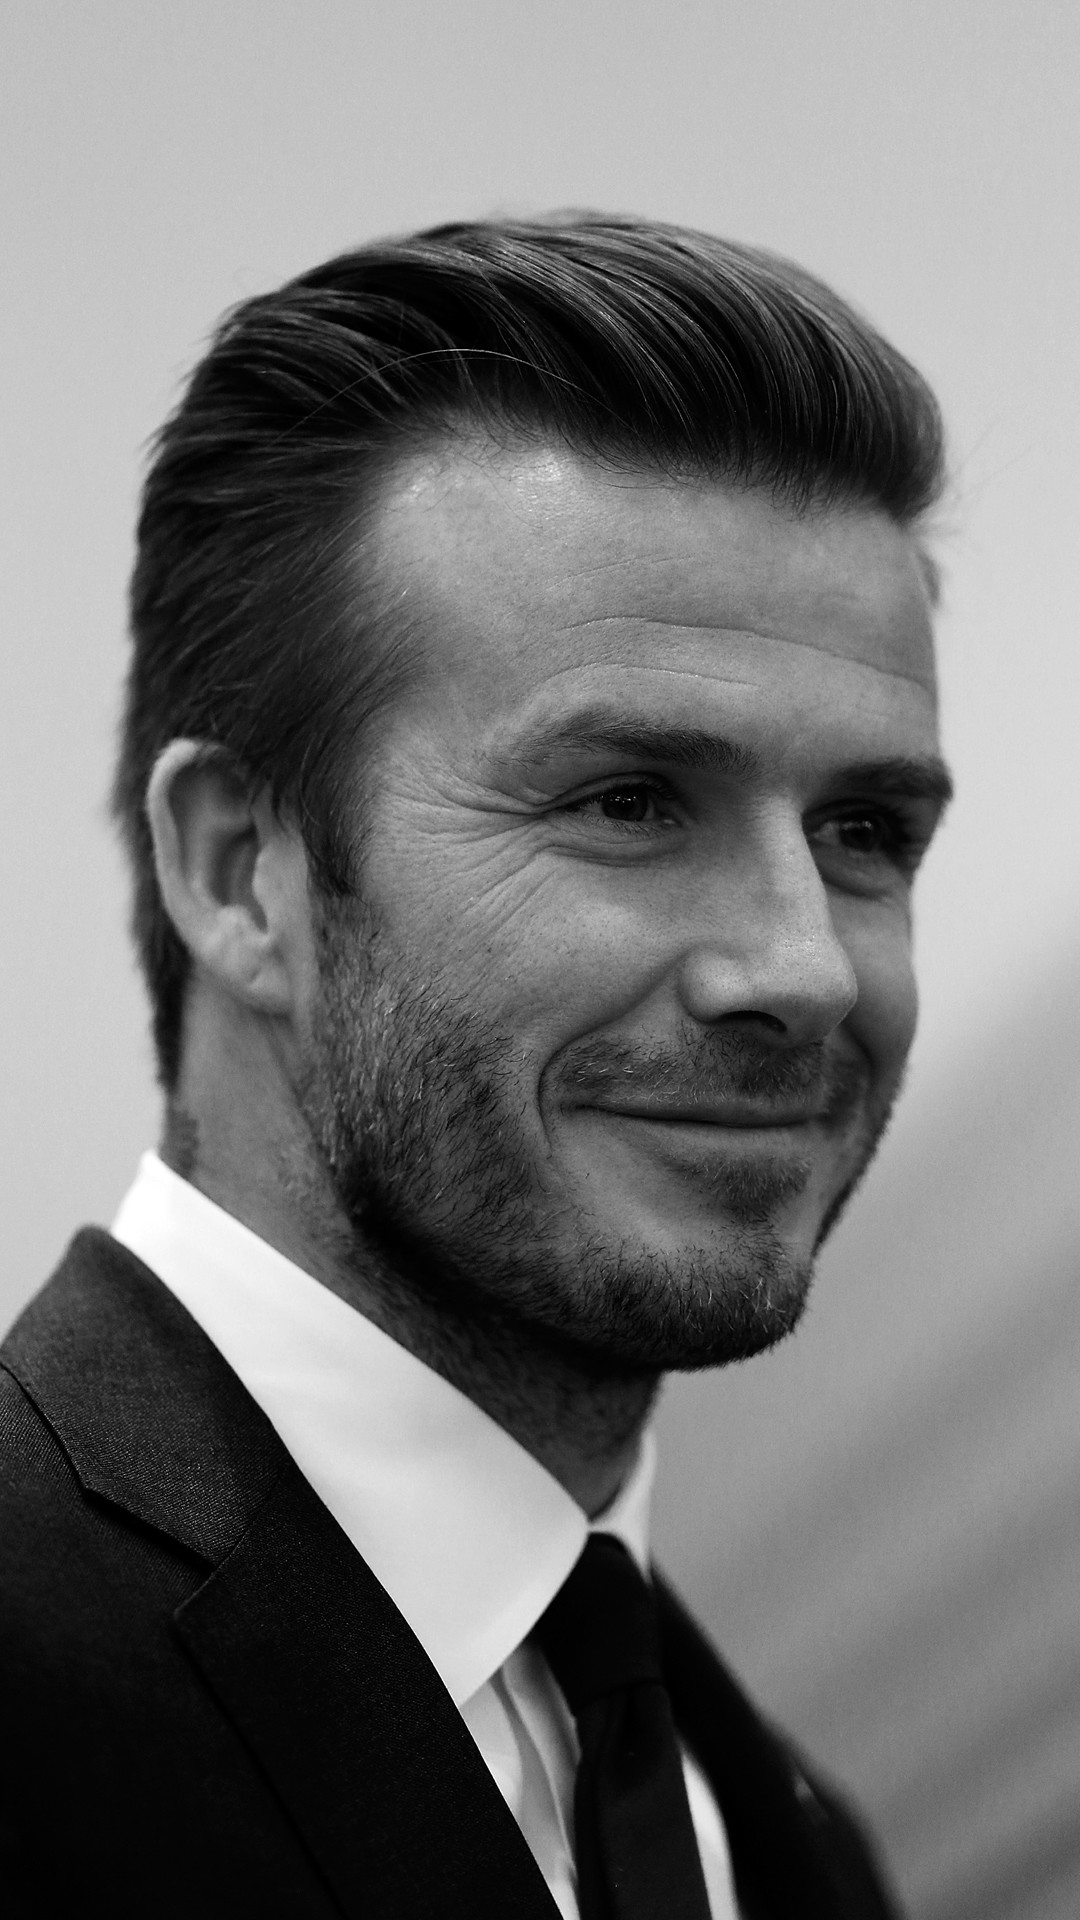 David beckham wallpapers 53 images for David beckham